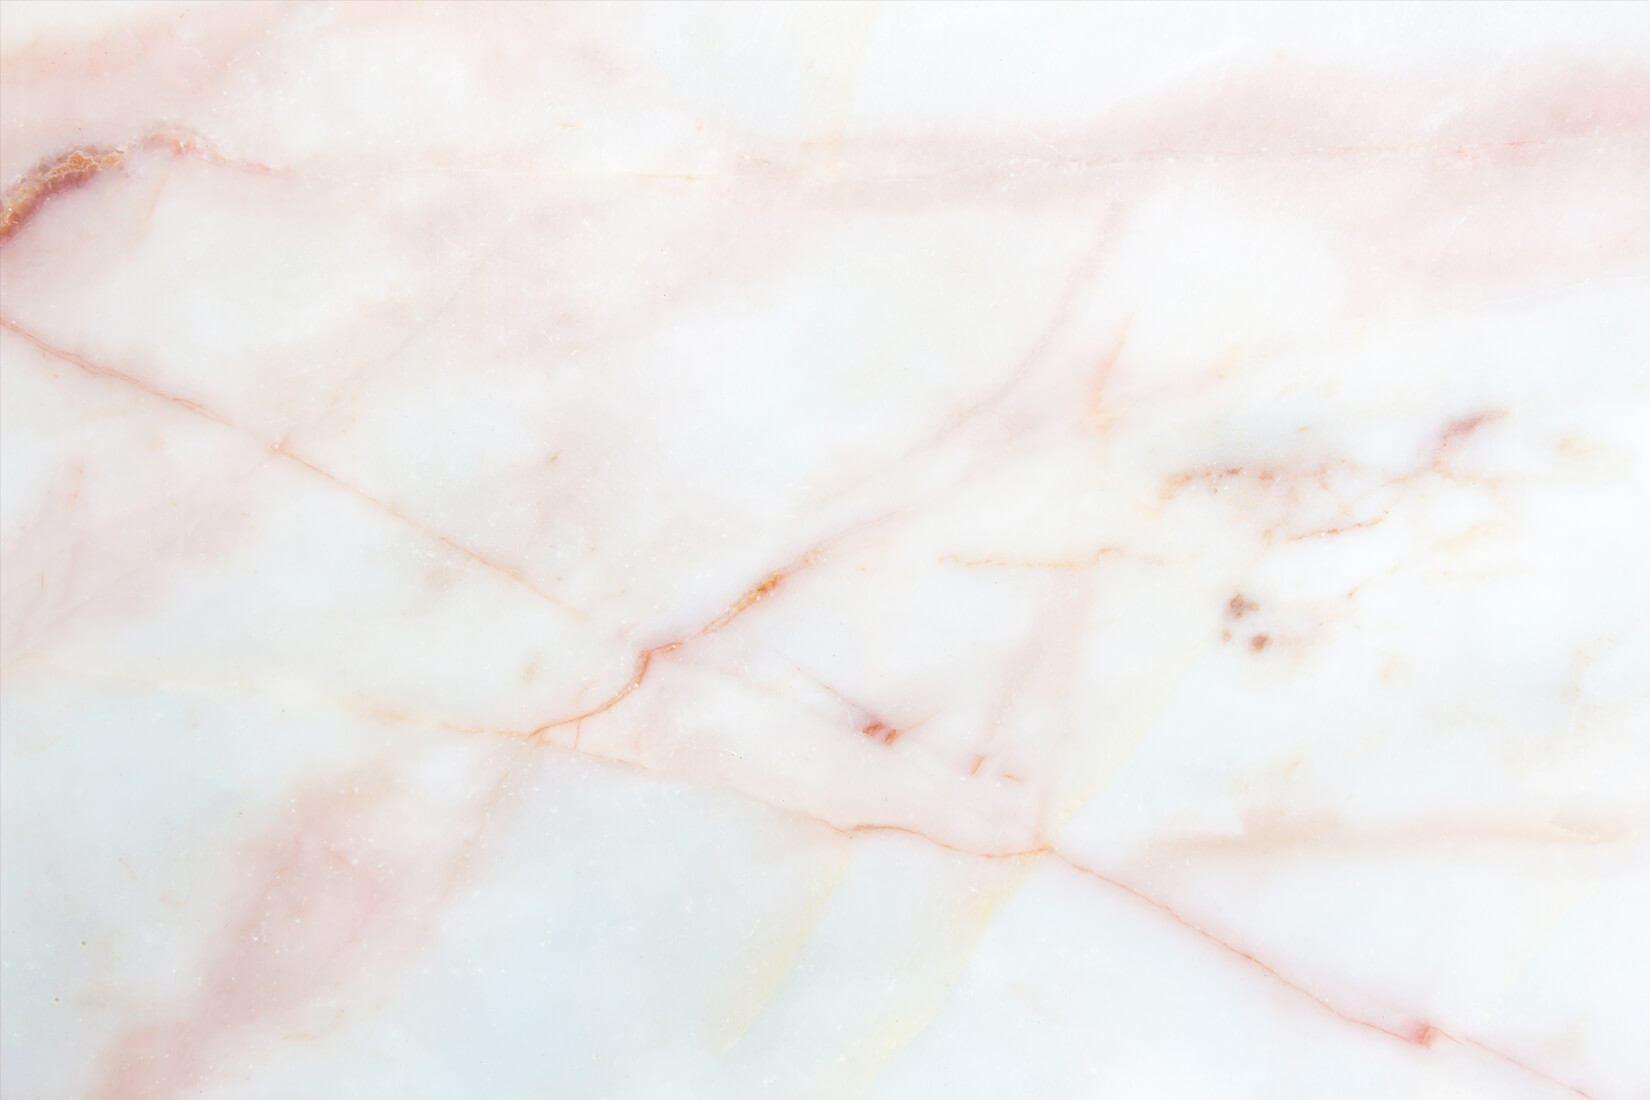 Pink Marble Wallpaper, Cracked coral marble texture